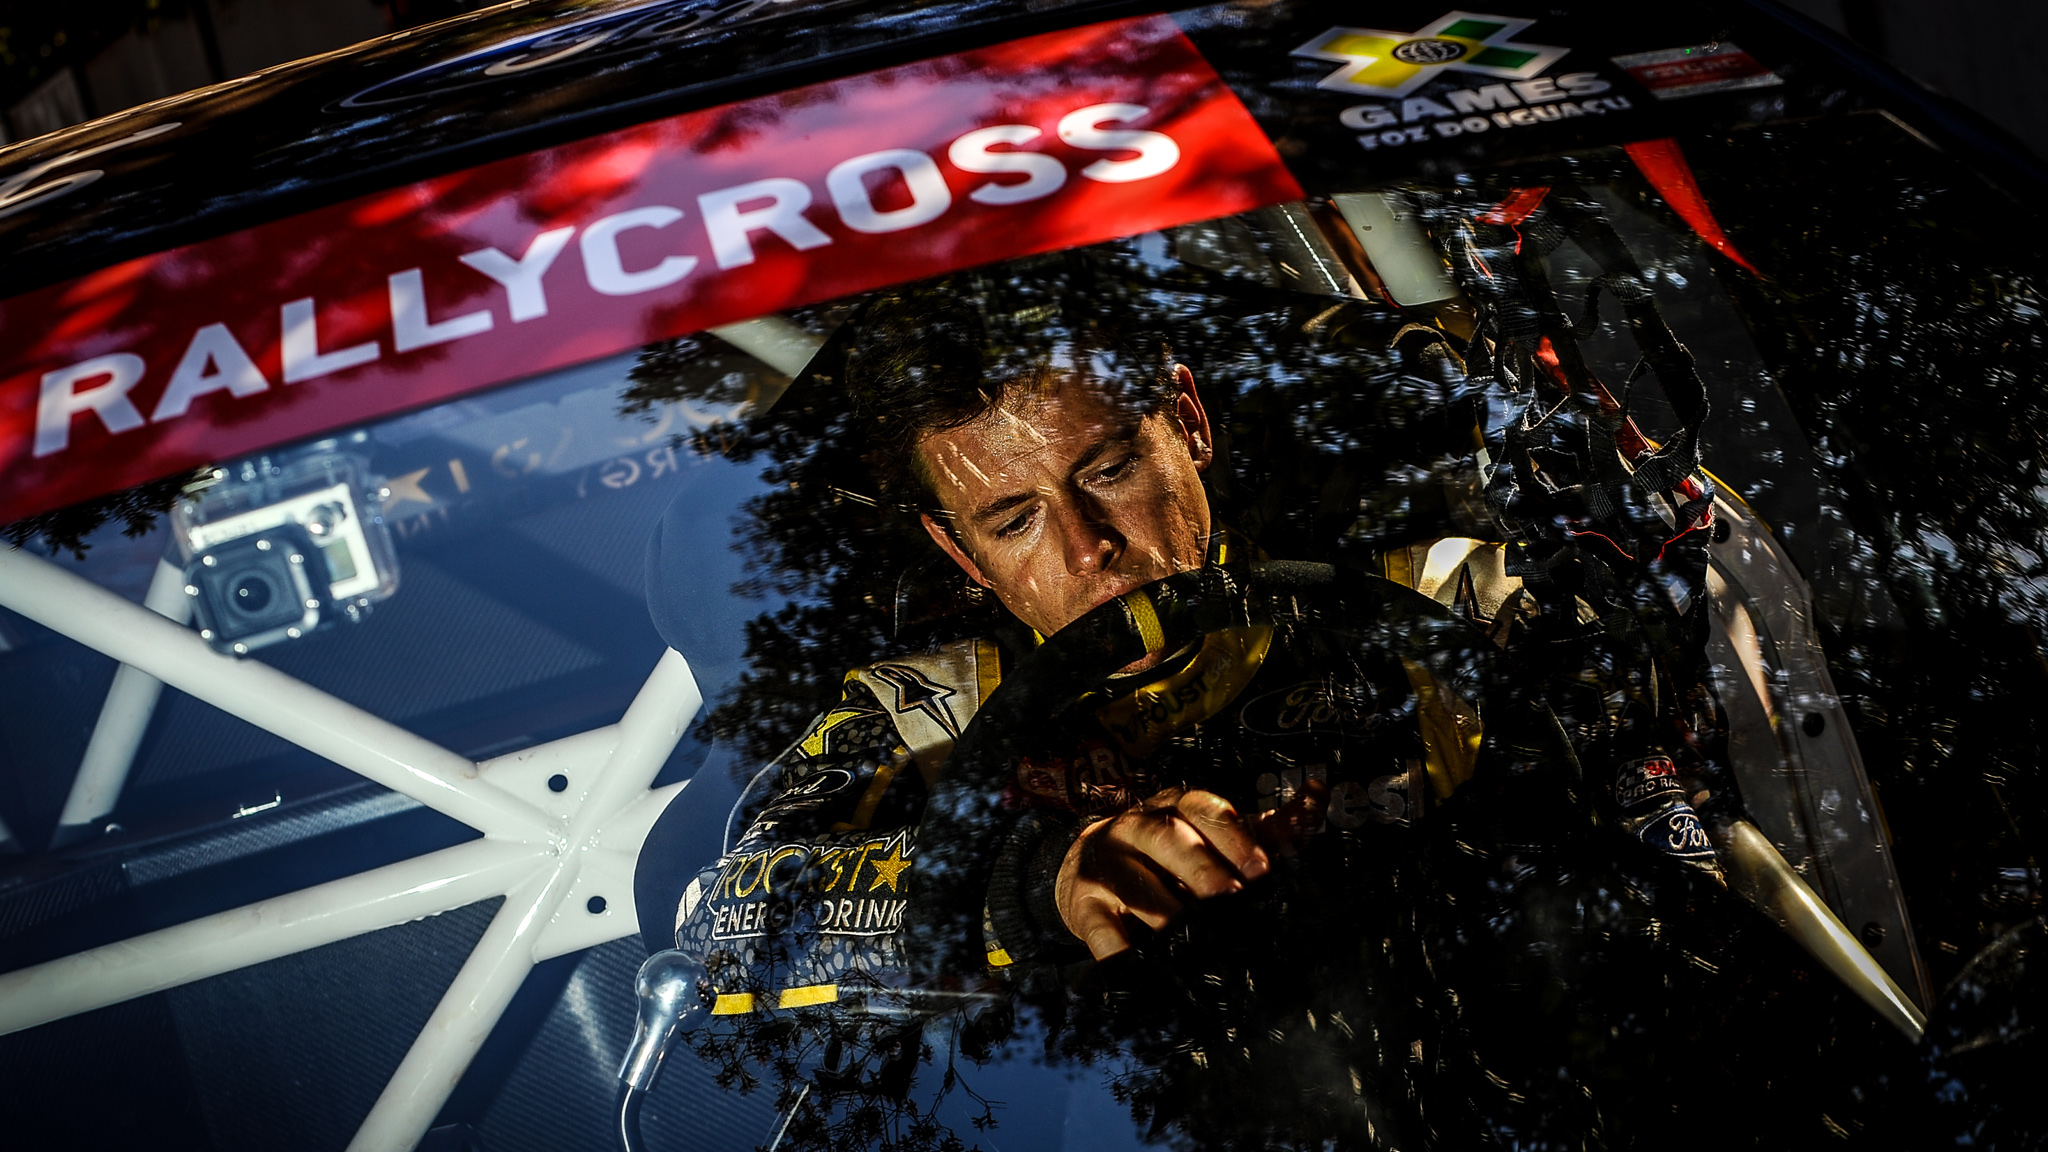 Foust gets ready to rip during the Ford RallyCross Seeding at X Games Foz Do Iguau 2013.